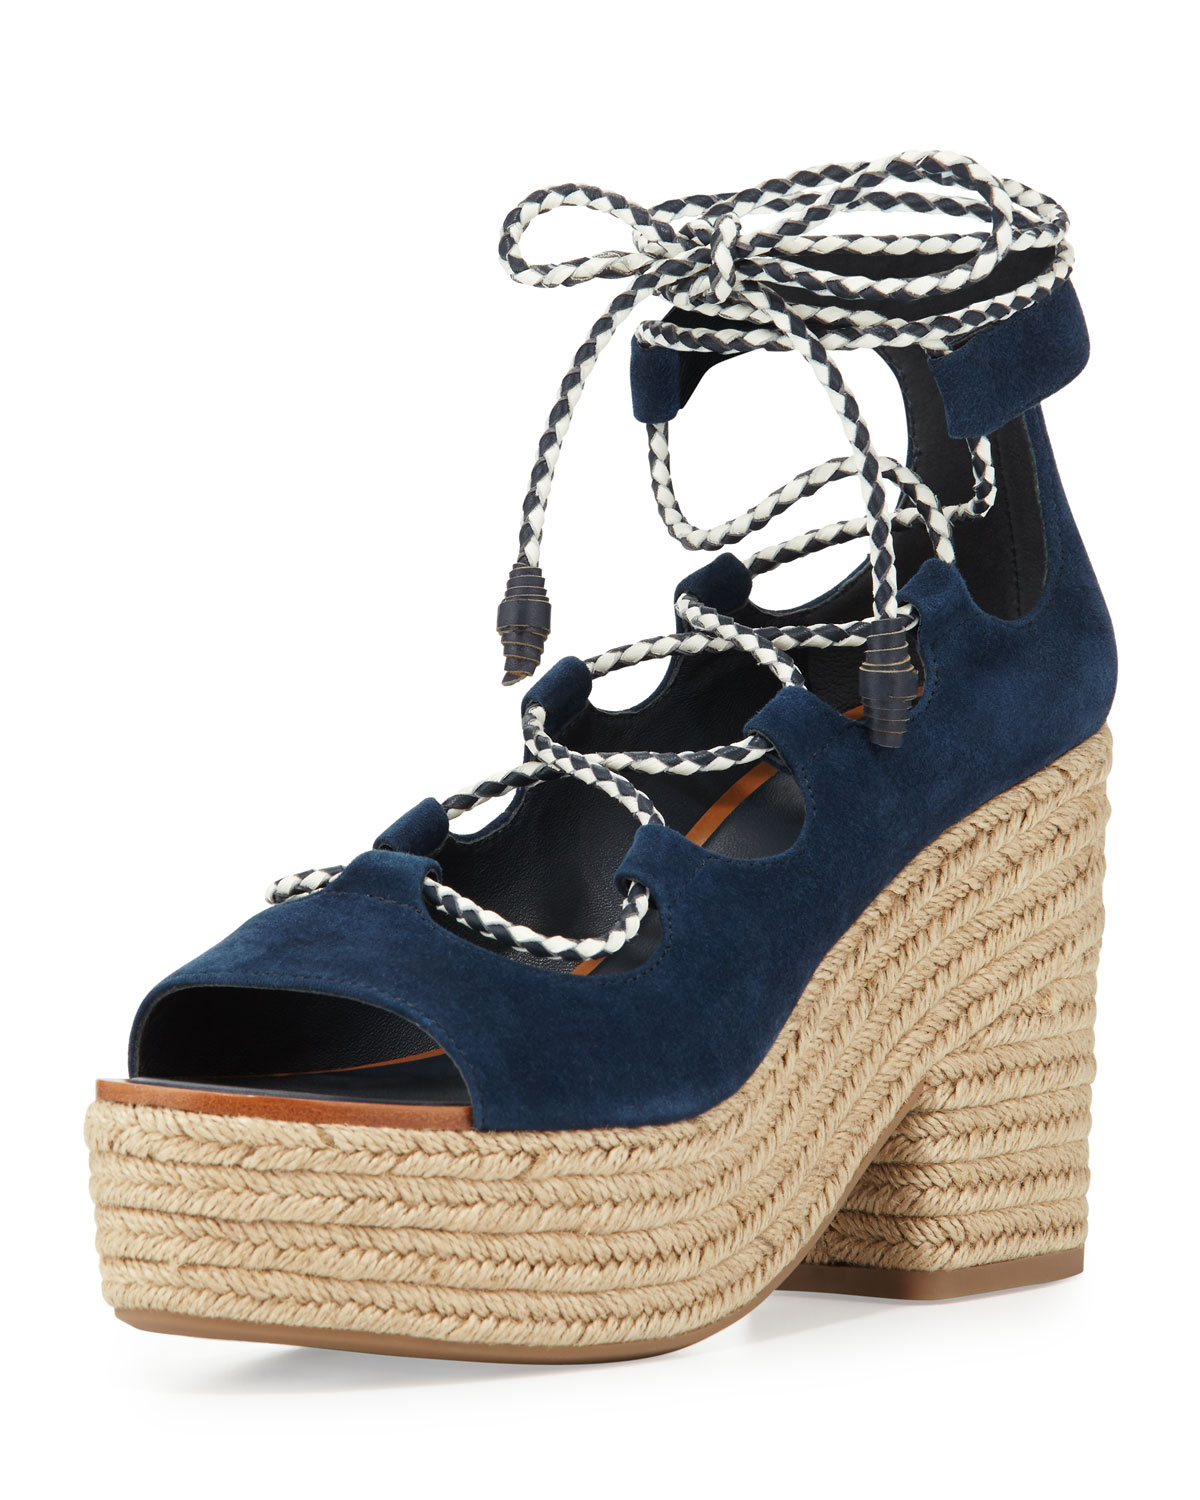 f5546bb178aa Tory Burch Positano Suede Lace-Up Sandal